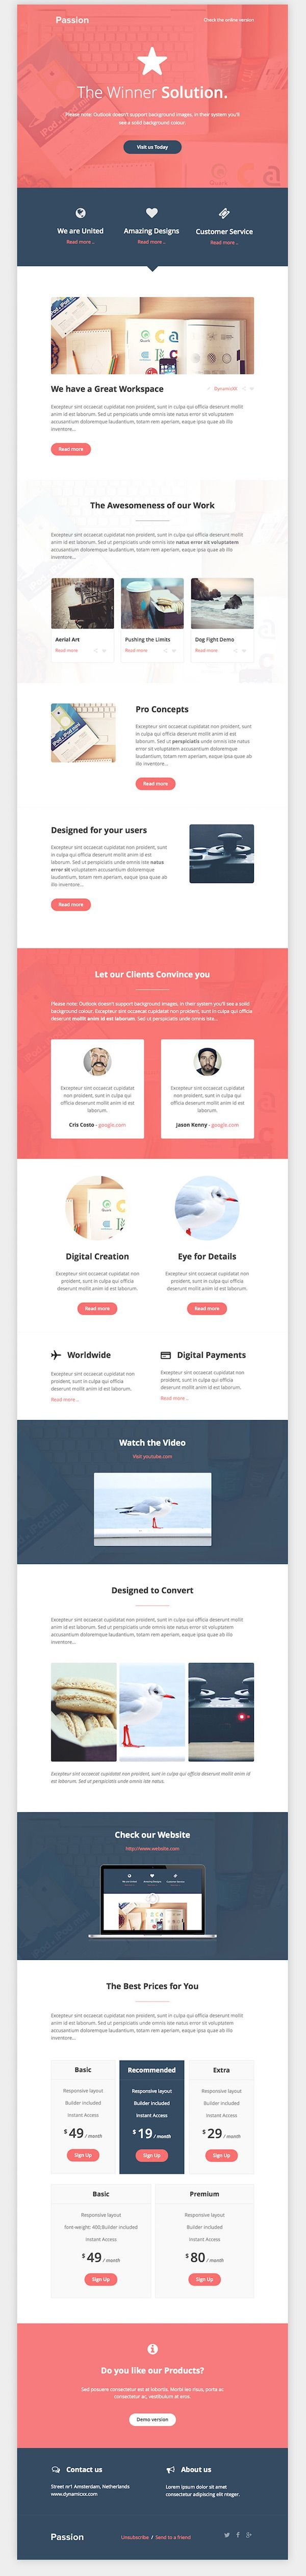 Clean Business Email Template                                                                                                                                                                                 More